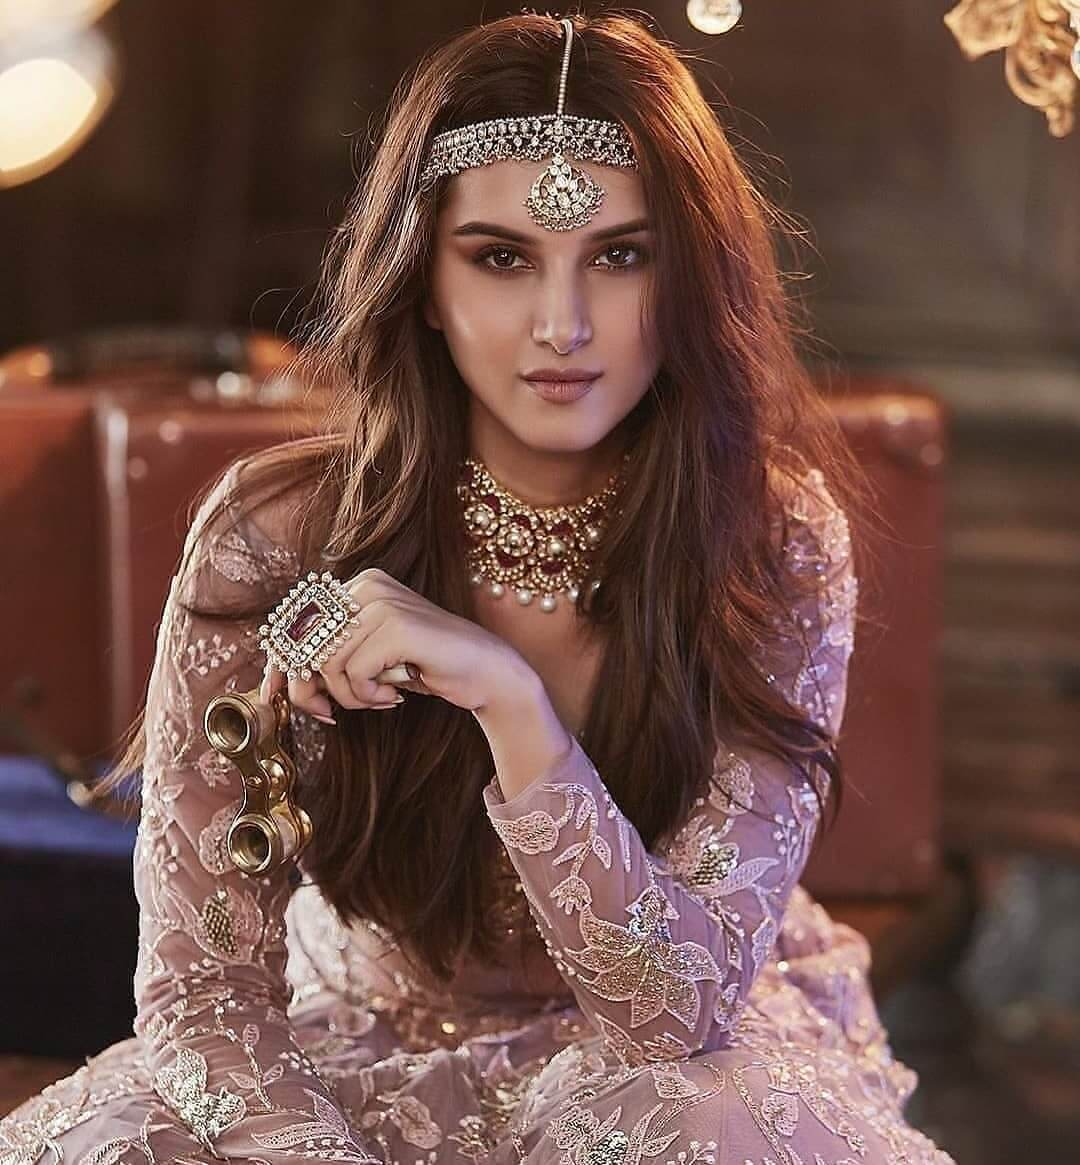 Glamorous Matha Patti Designs For 2020 Brides To Flaunt Like A Diva At Their Wedding!